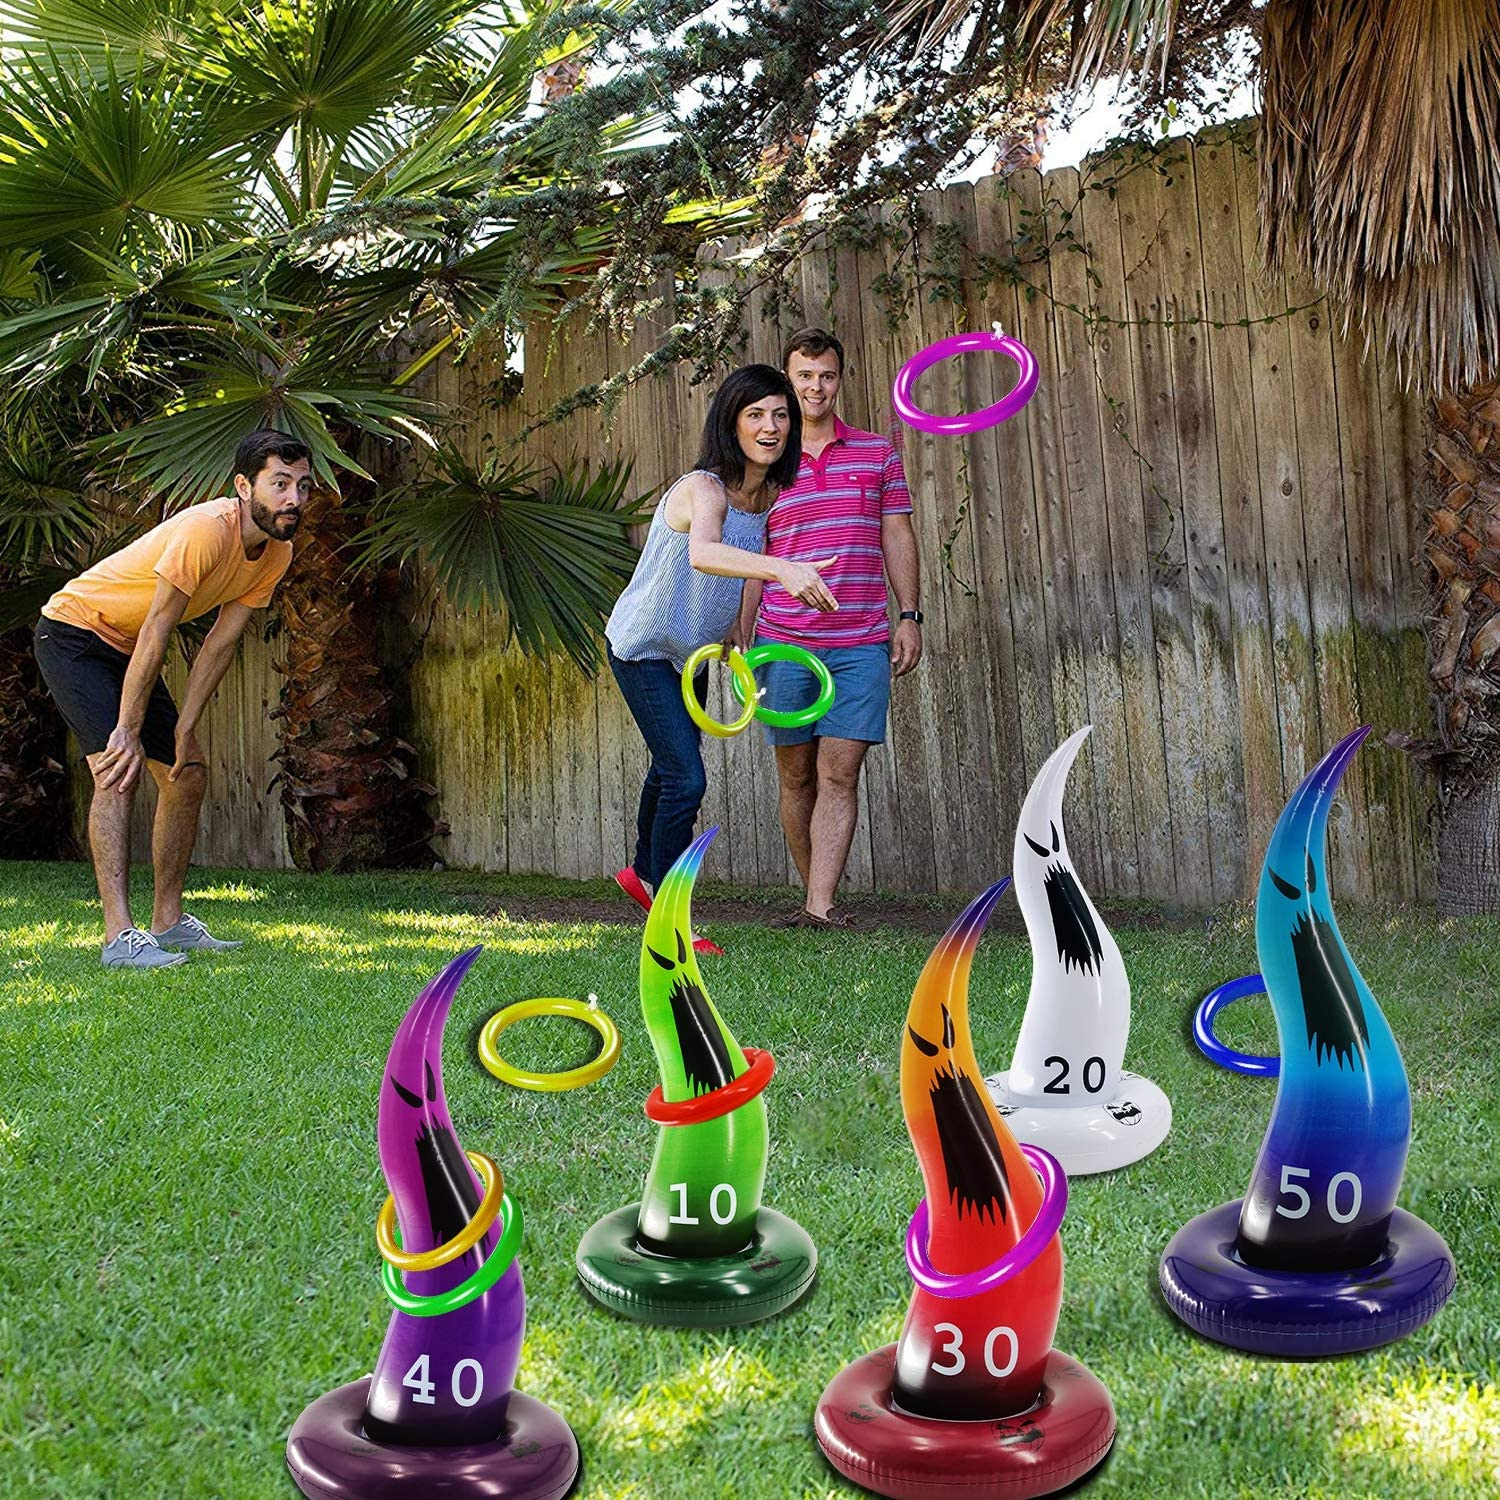 TURNMEON 5 PCS Inflatable Ghost Ring Toss Game for Kids Halloween Inflatable Party Games Halloween School Carnival Party Supplies Indoor Outdoor Games for Kids